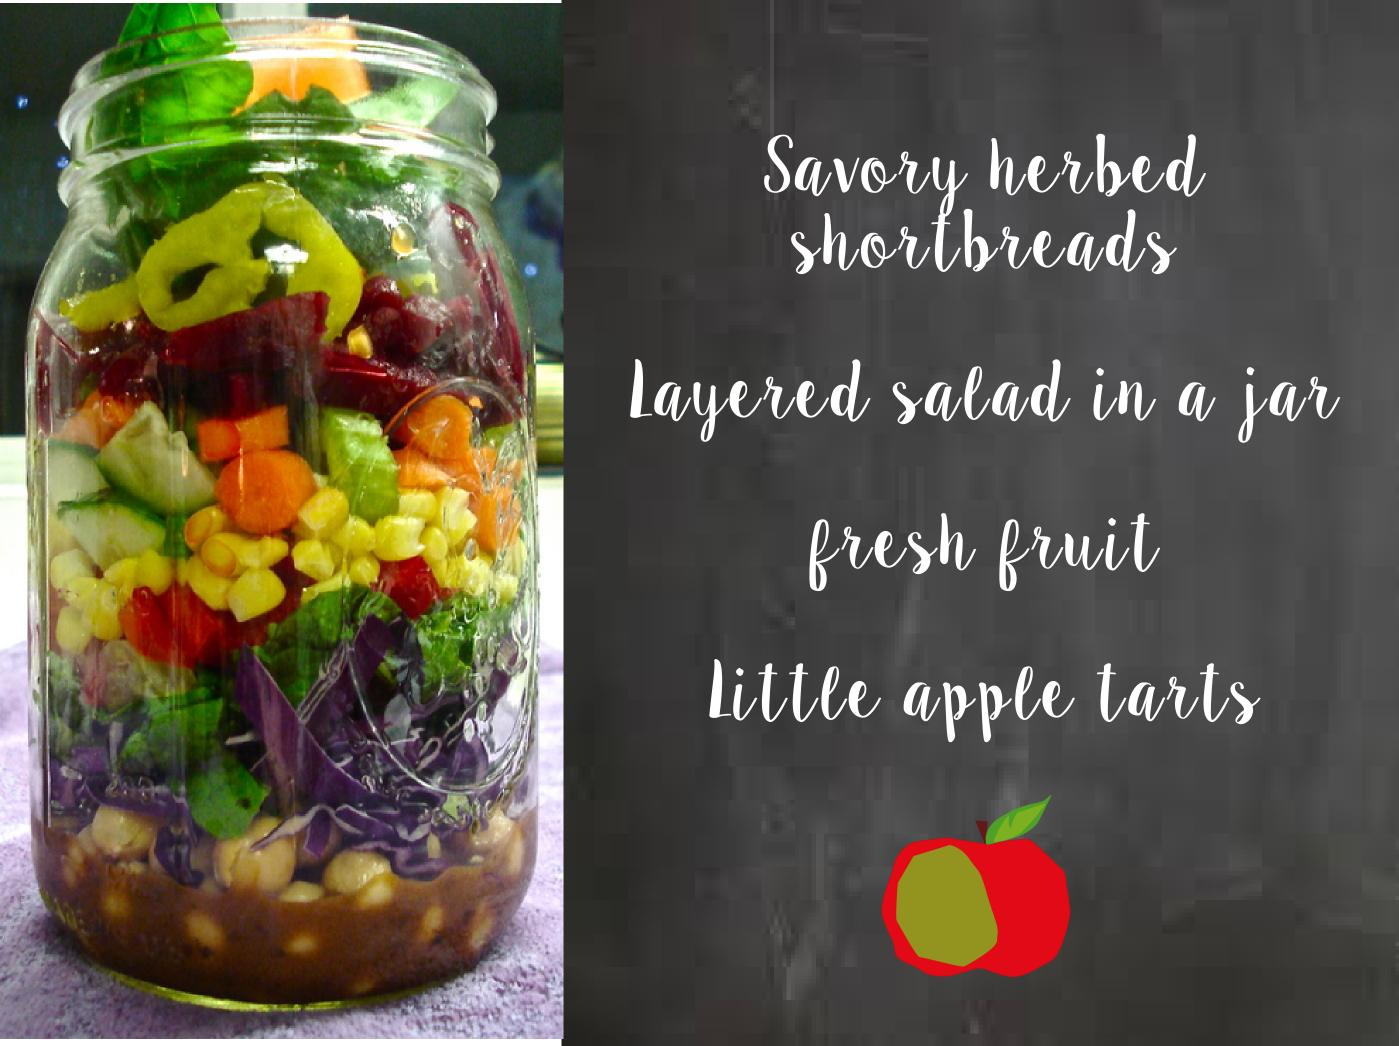 Layered Salads Like This Are Little Pieces Of Art They Trendy But Also Really Do Work Well The Trick Is To Put Something On Bottom Layer That